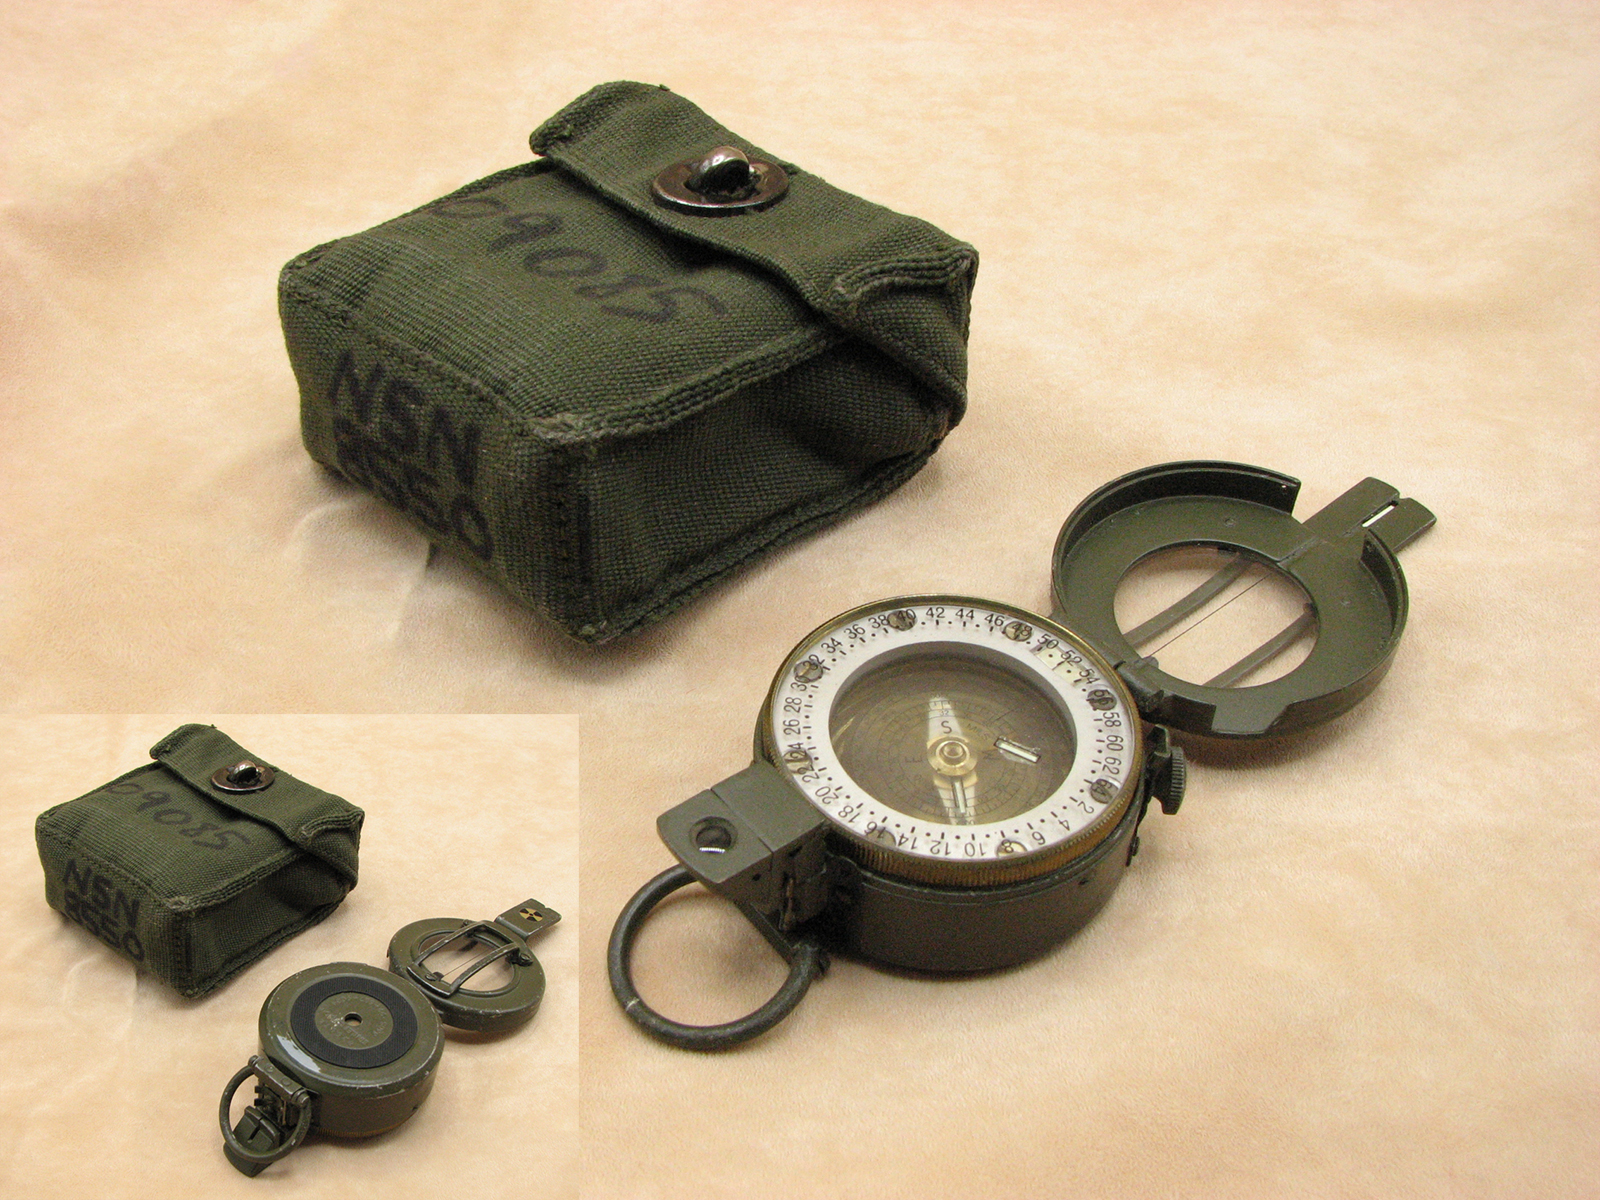 Stanley G150 mils version prismatic compass with patt 58 canvas pouch